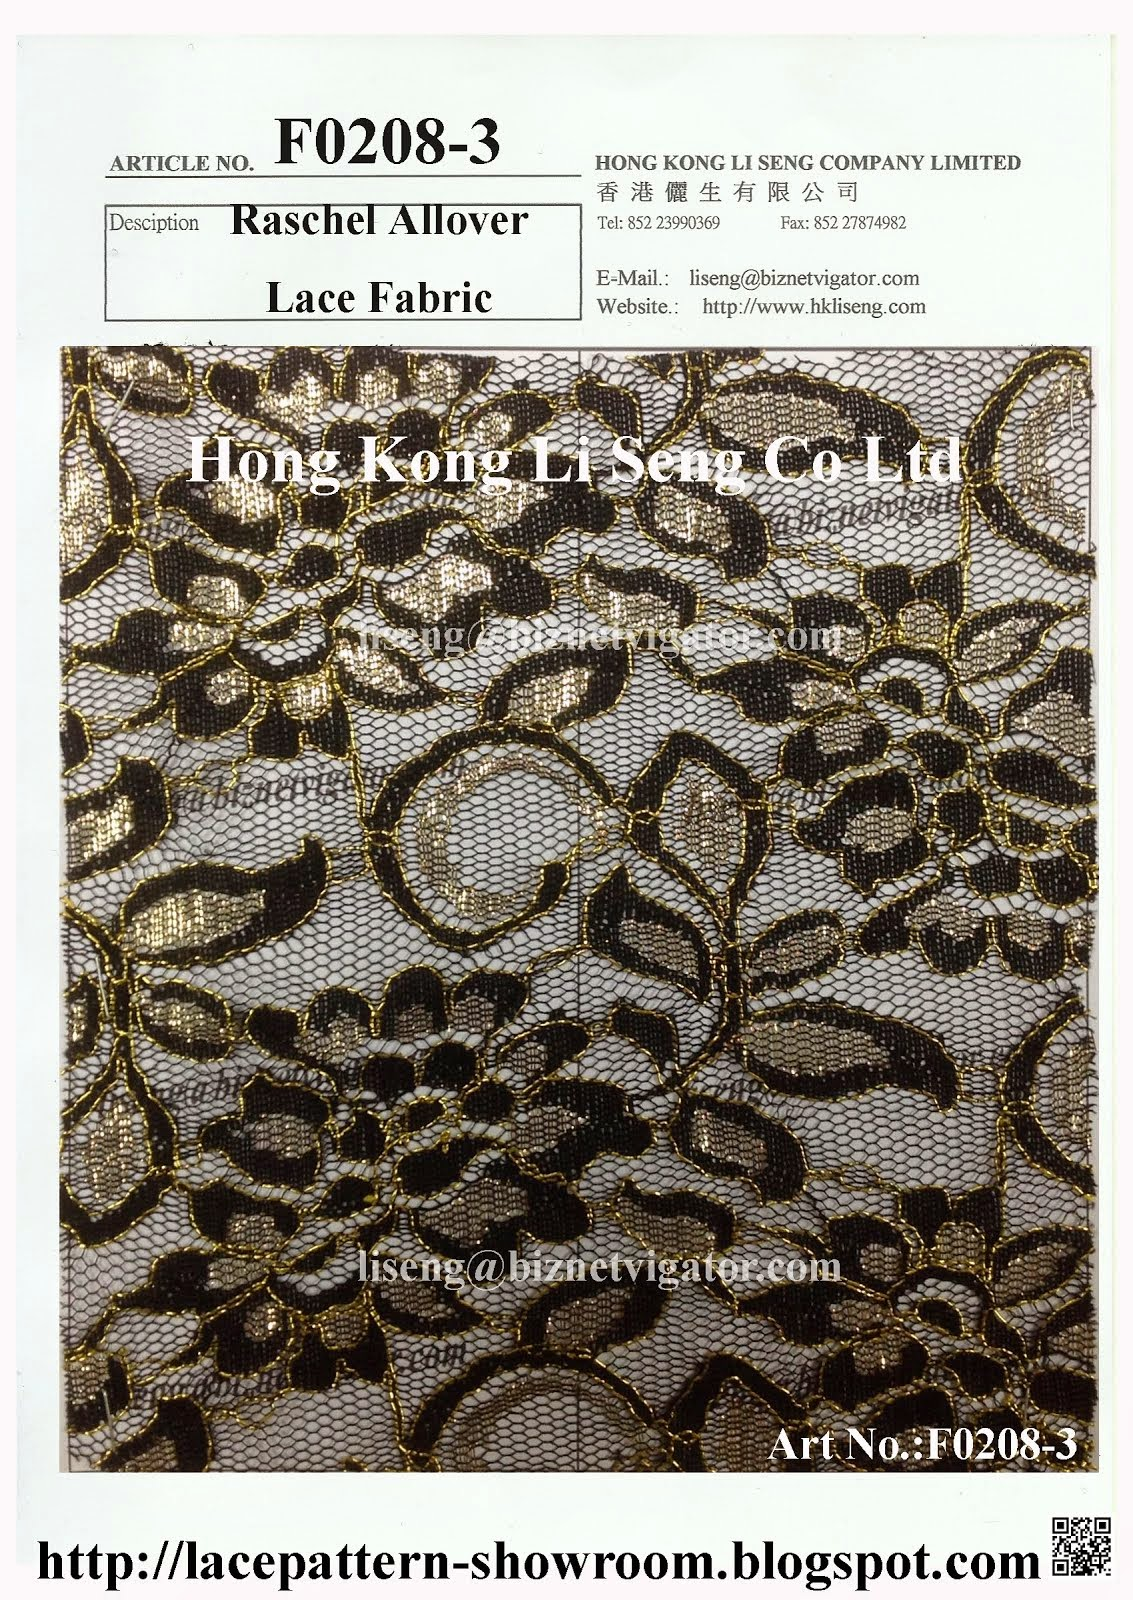 Metallic Gold Raschel Allover Fabric Manufacturer